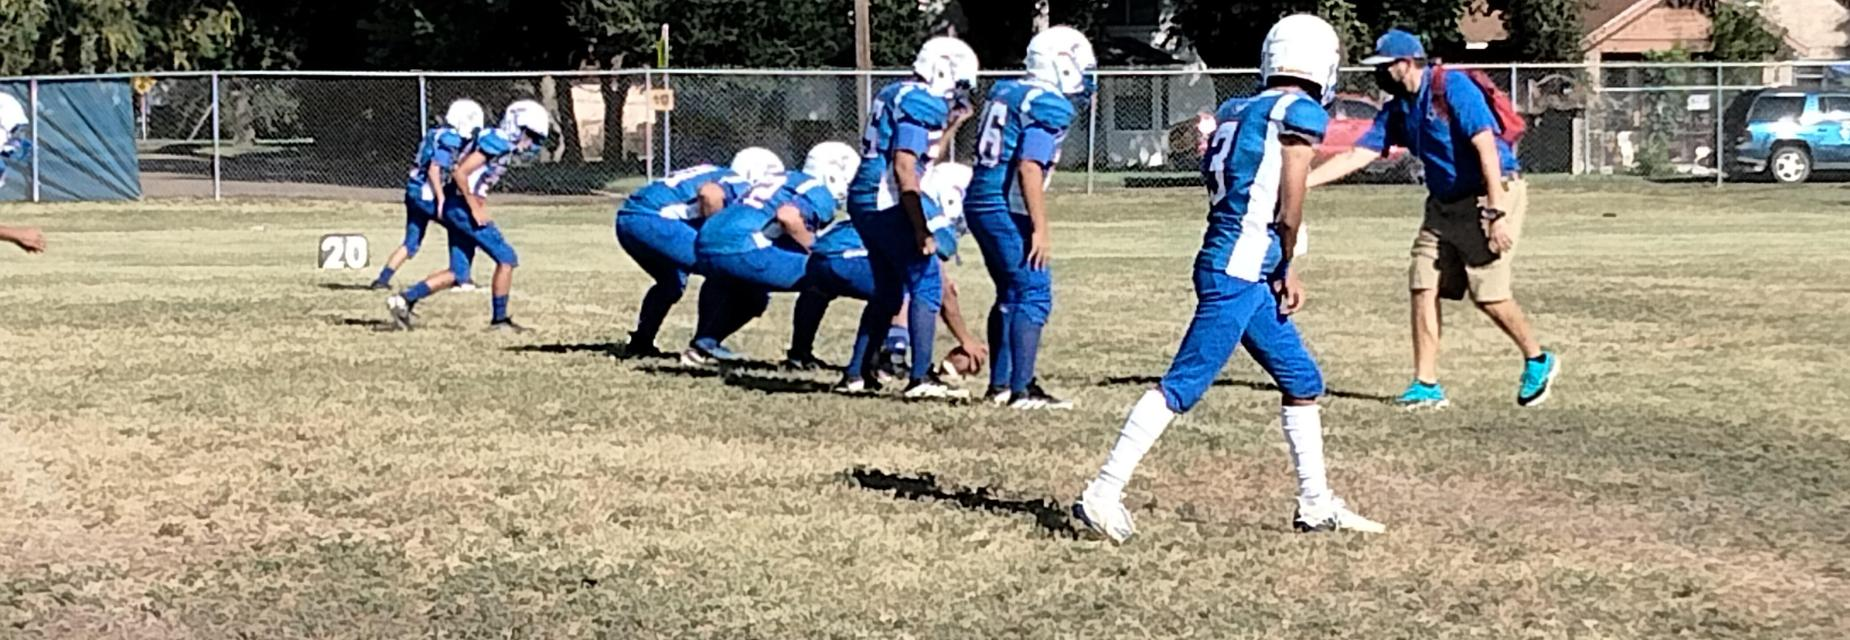 8th grade football team getting ready before a game.